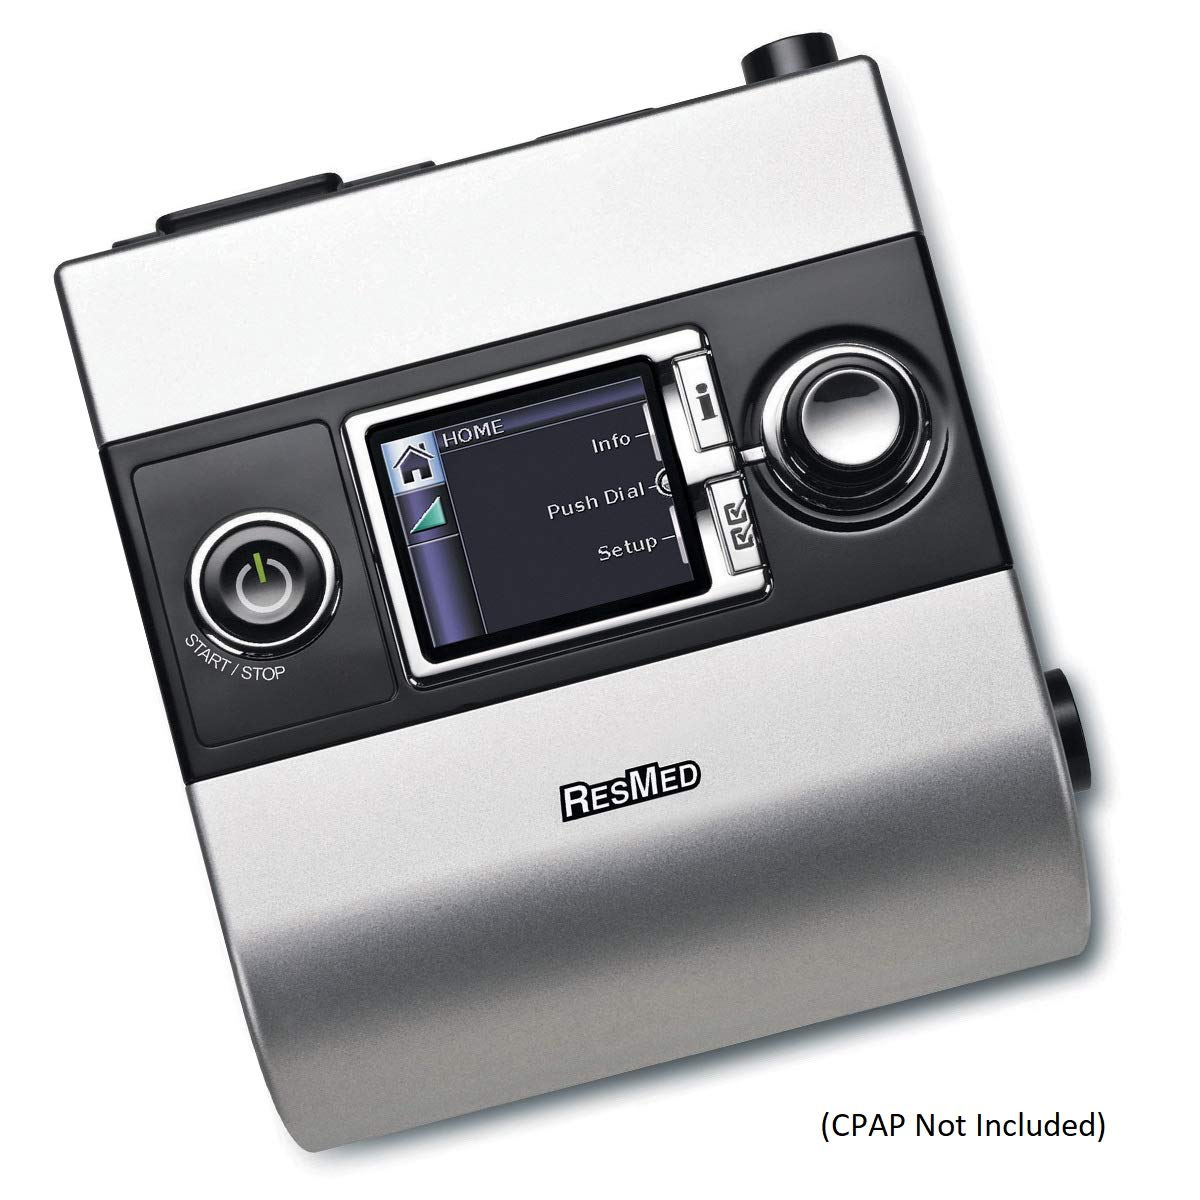 CPAP Battery (2019 Model). for ResMed Air Sense 10, Air Curve 10, and S9. Now with LCD Display and Bonus Backpack Bag